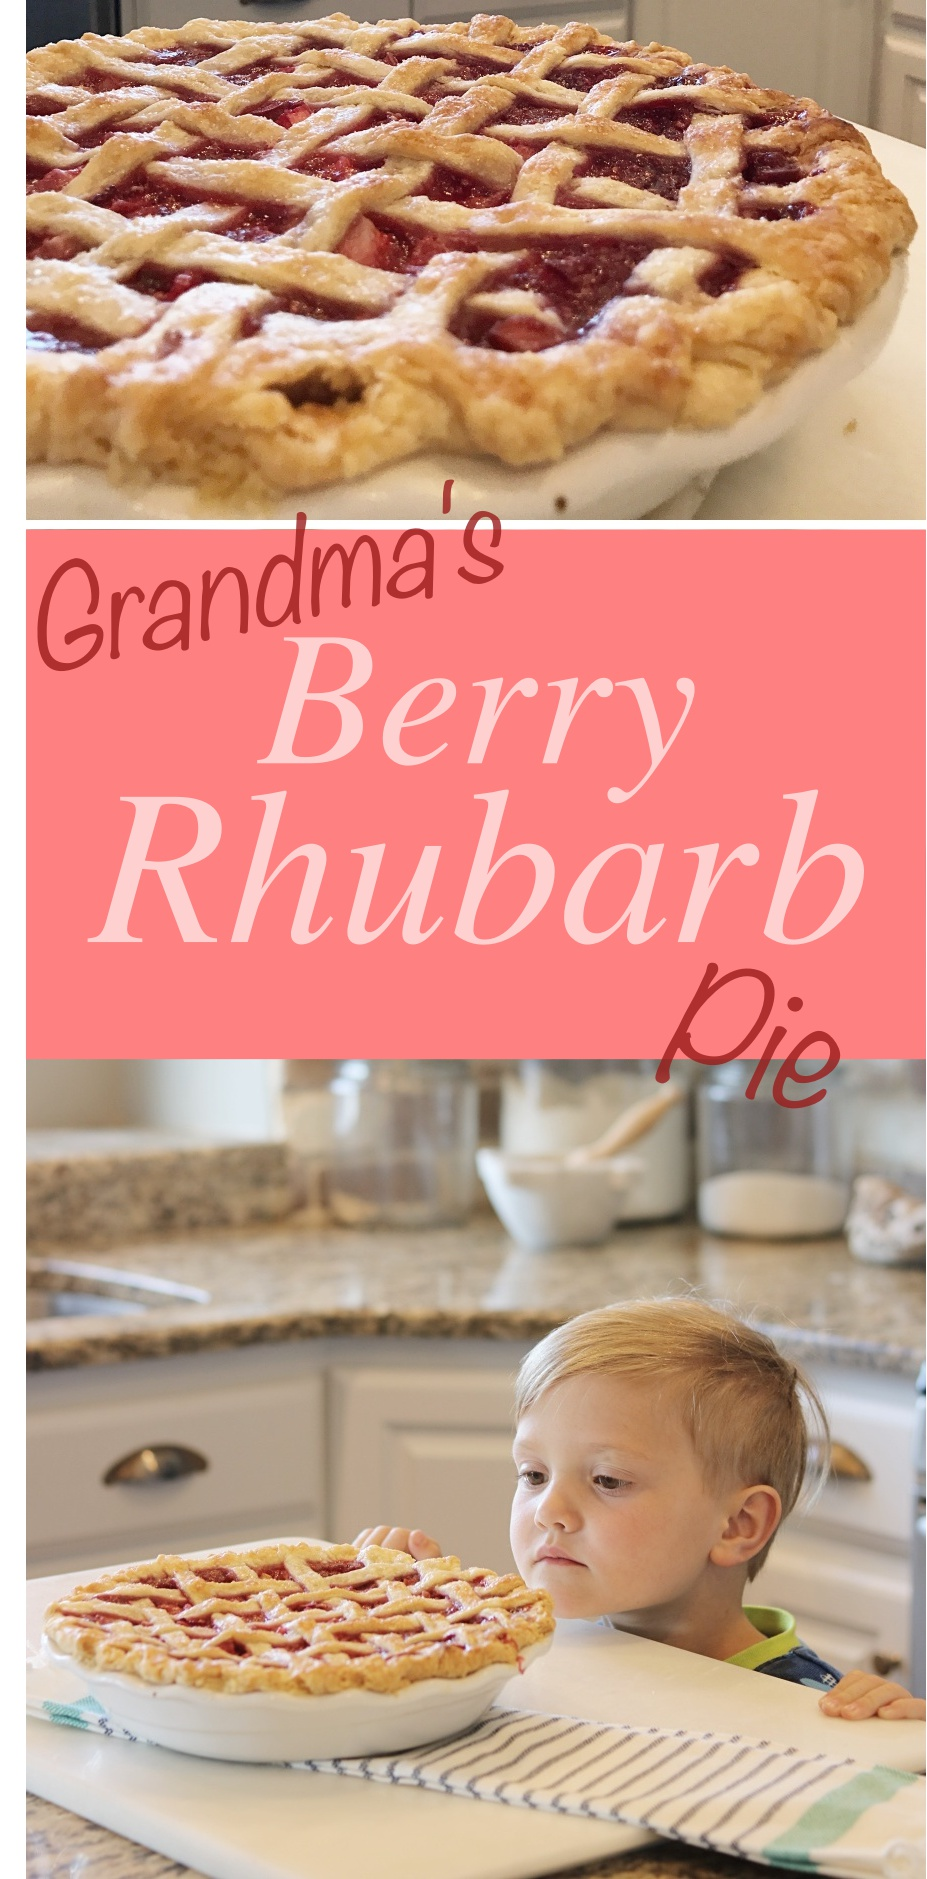 grandma's pie recipe, strawberry rhubarb pie, berry pie